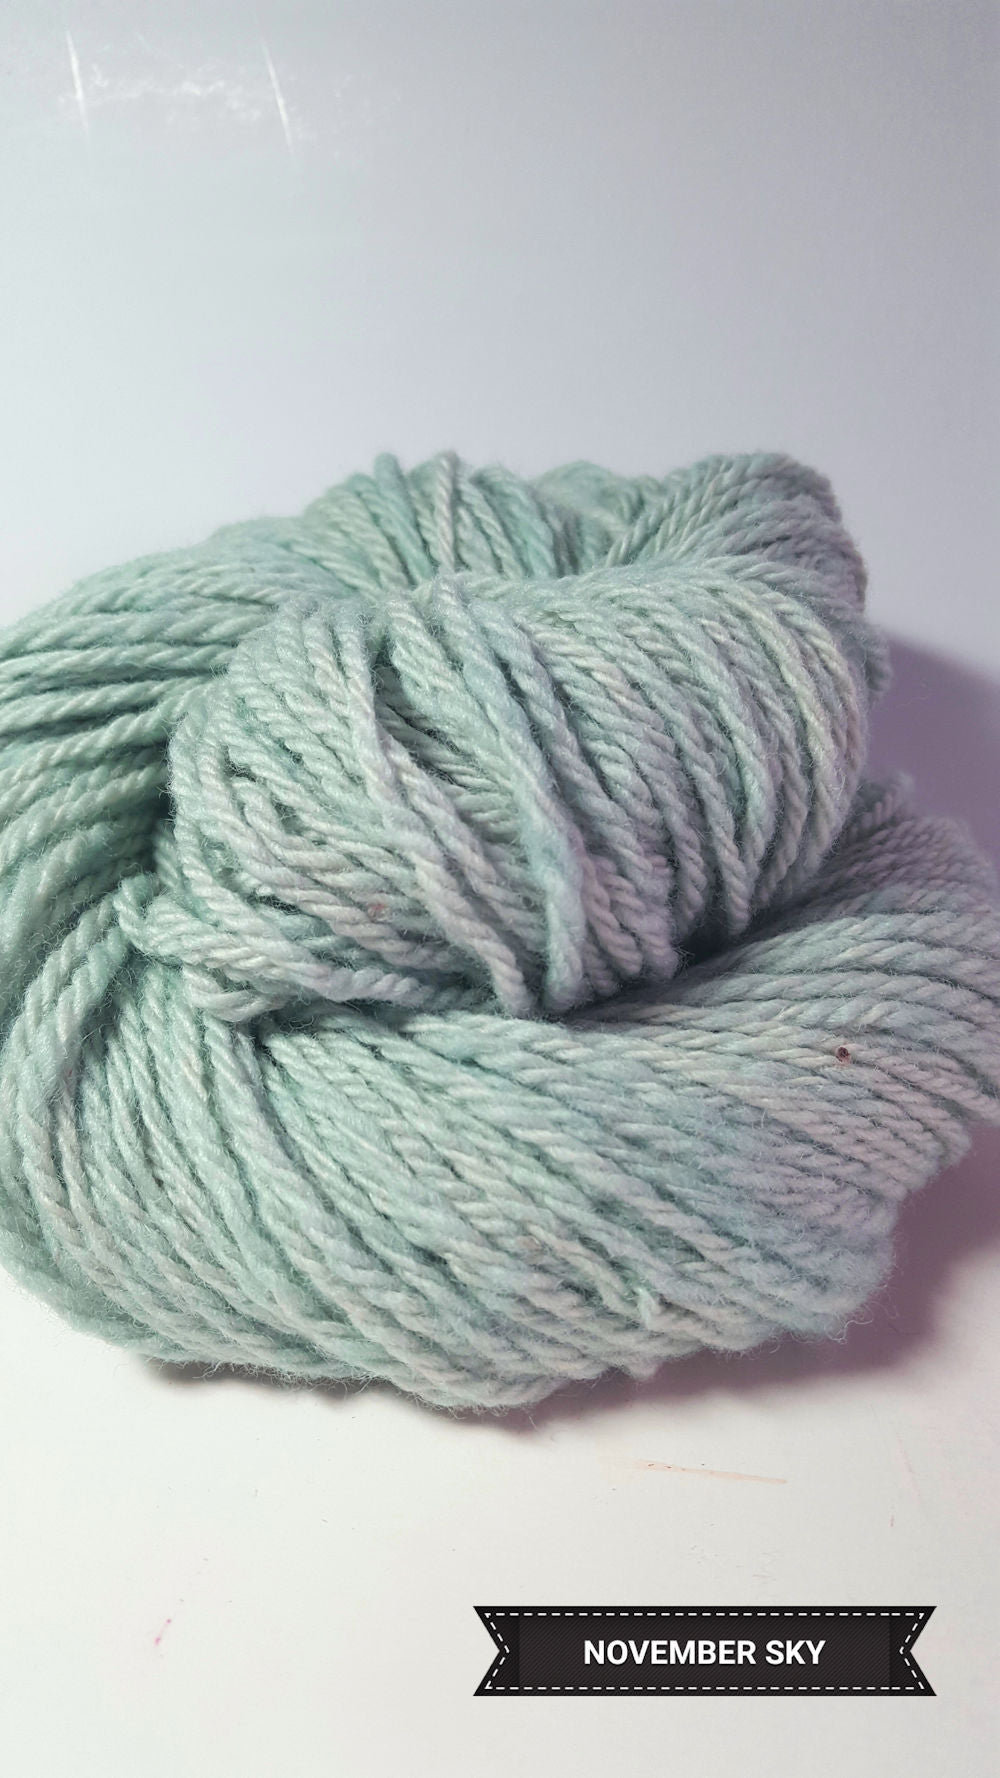 November Sky - Hand Dyed Aran/Worsted Yarn for Rug Hooking